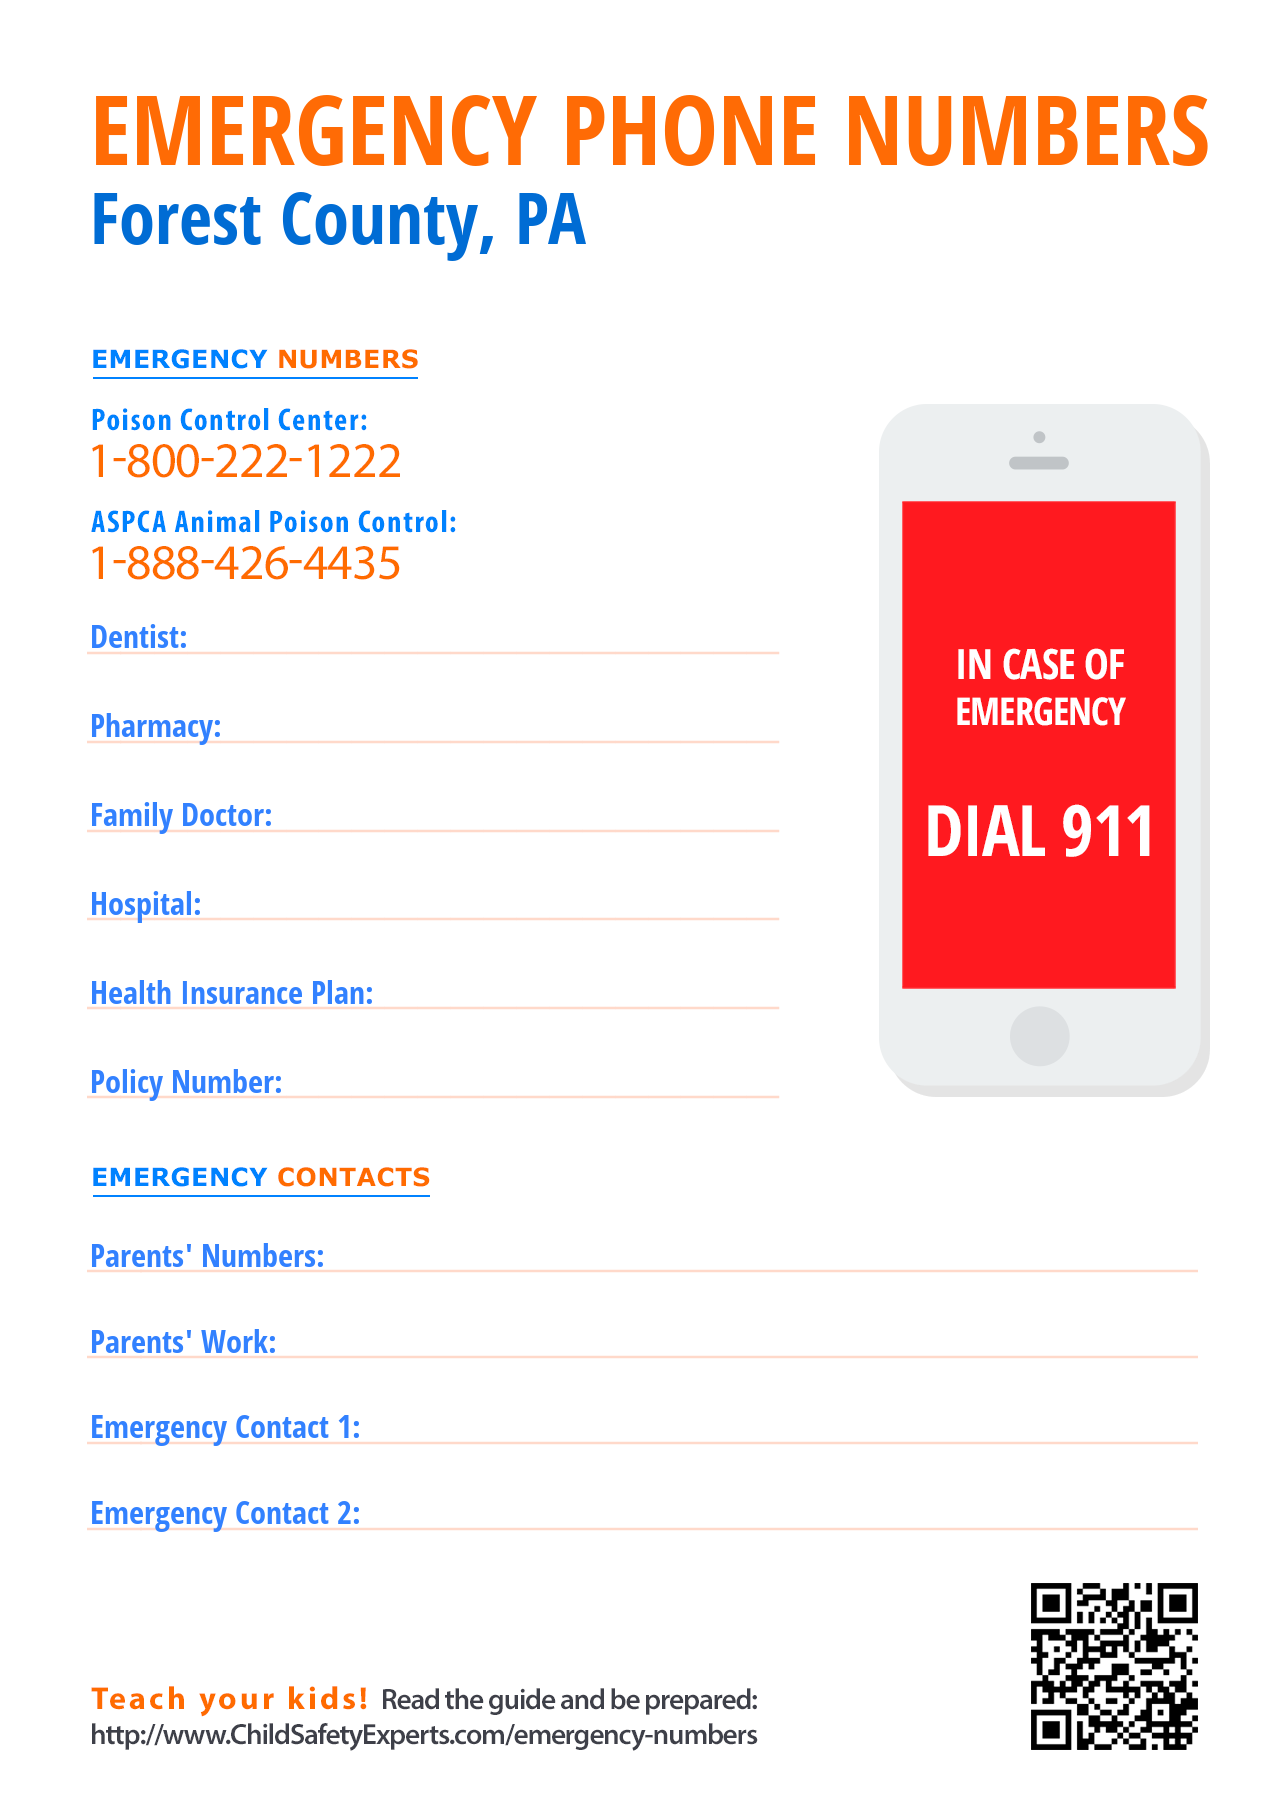 Important emergency phone numbers in Forest County, Pennsylvania